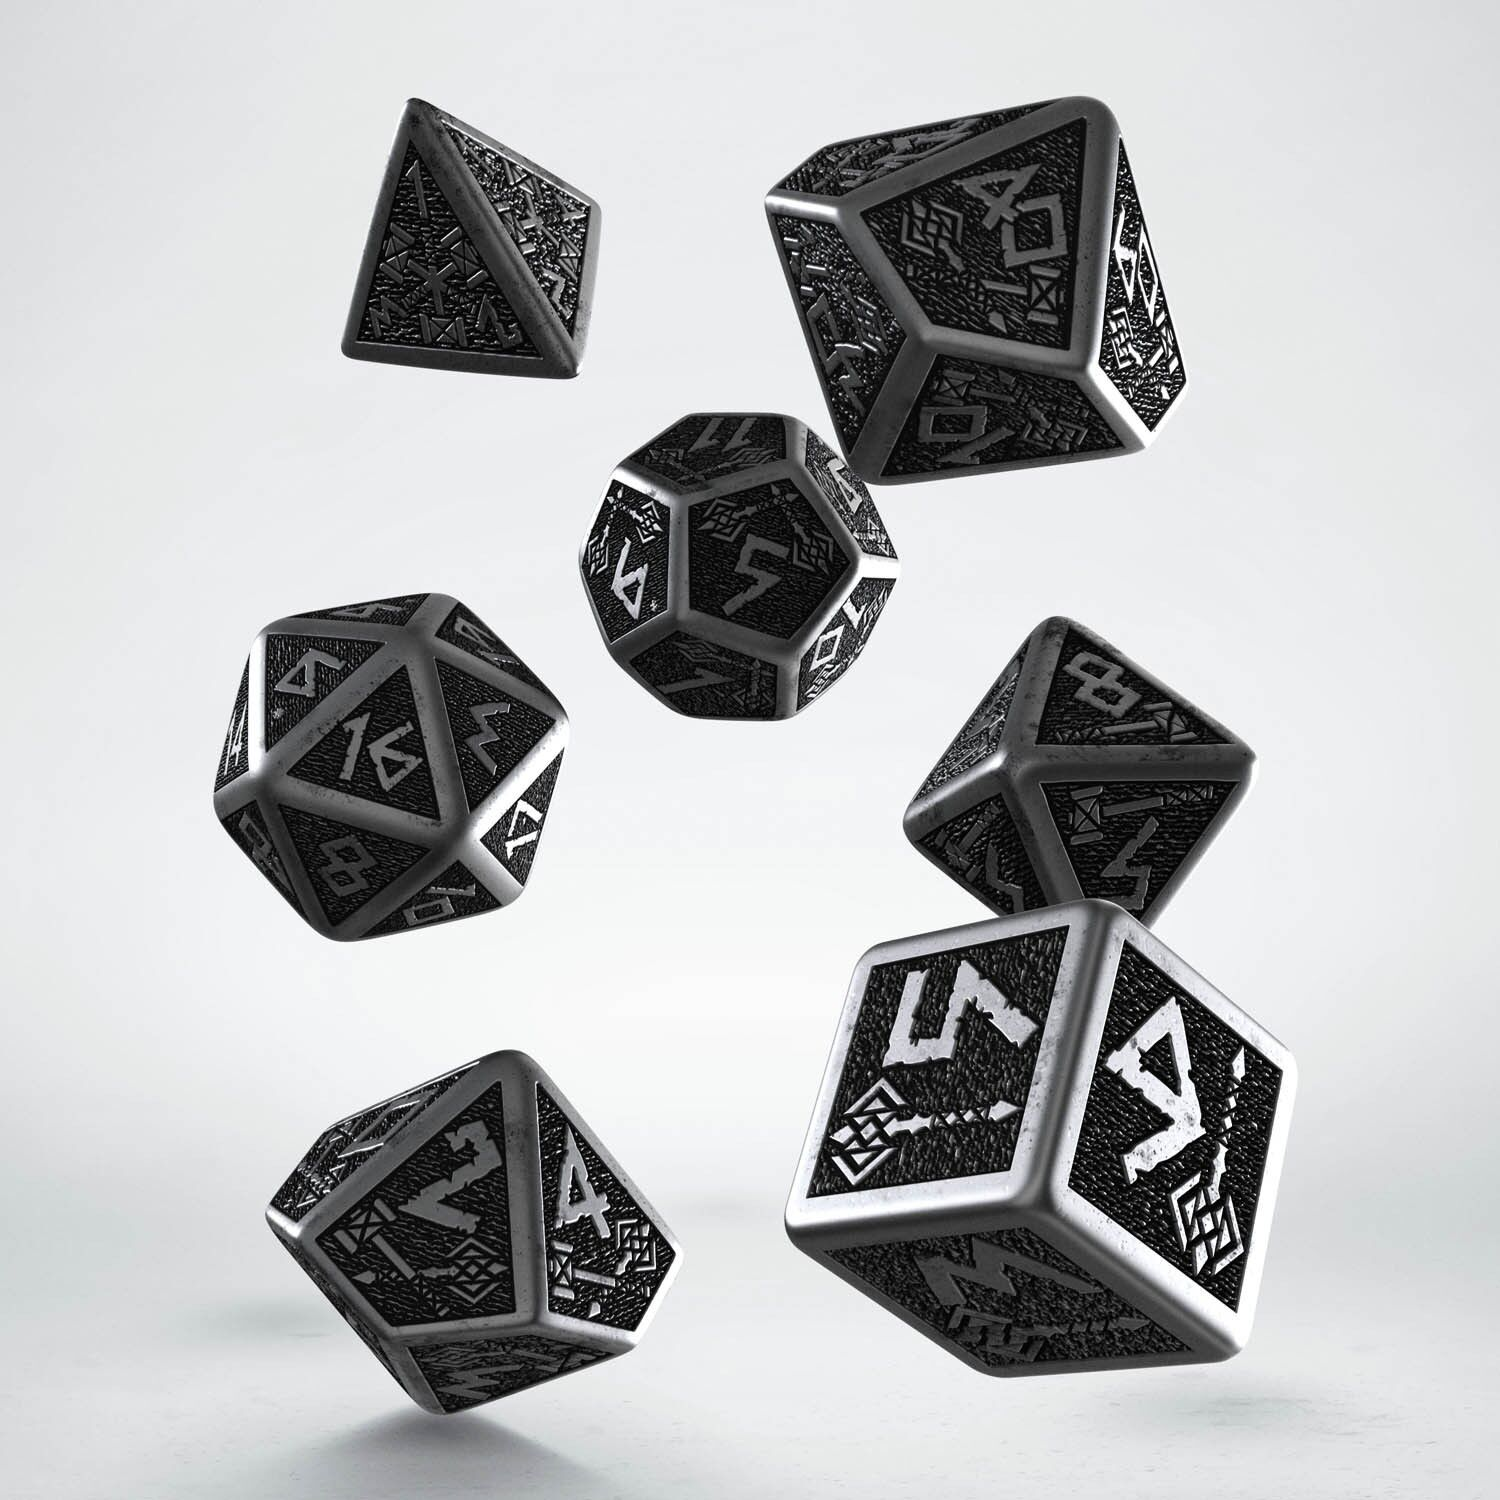 Metal Dwarven Dice Set by Q-workshop